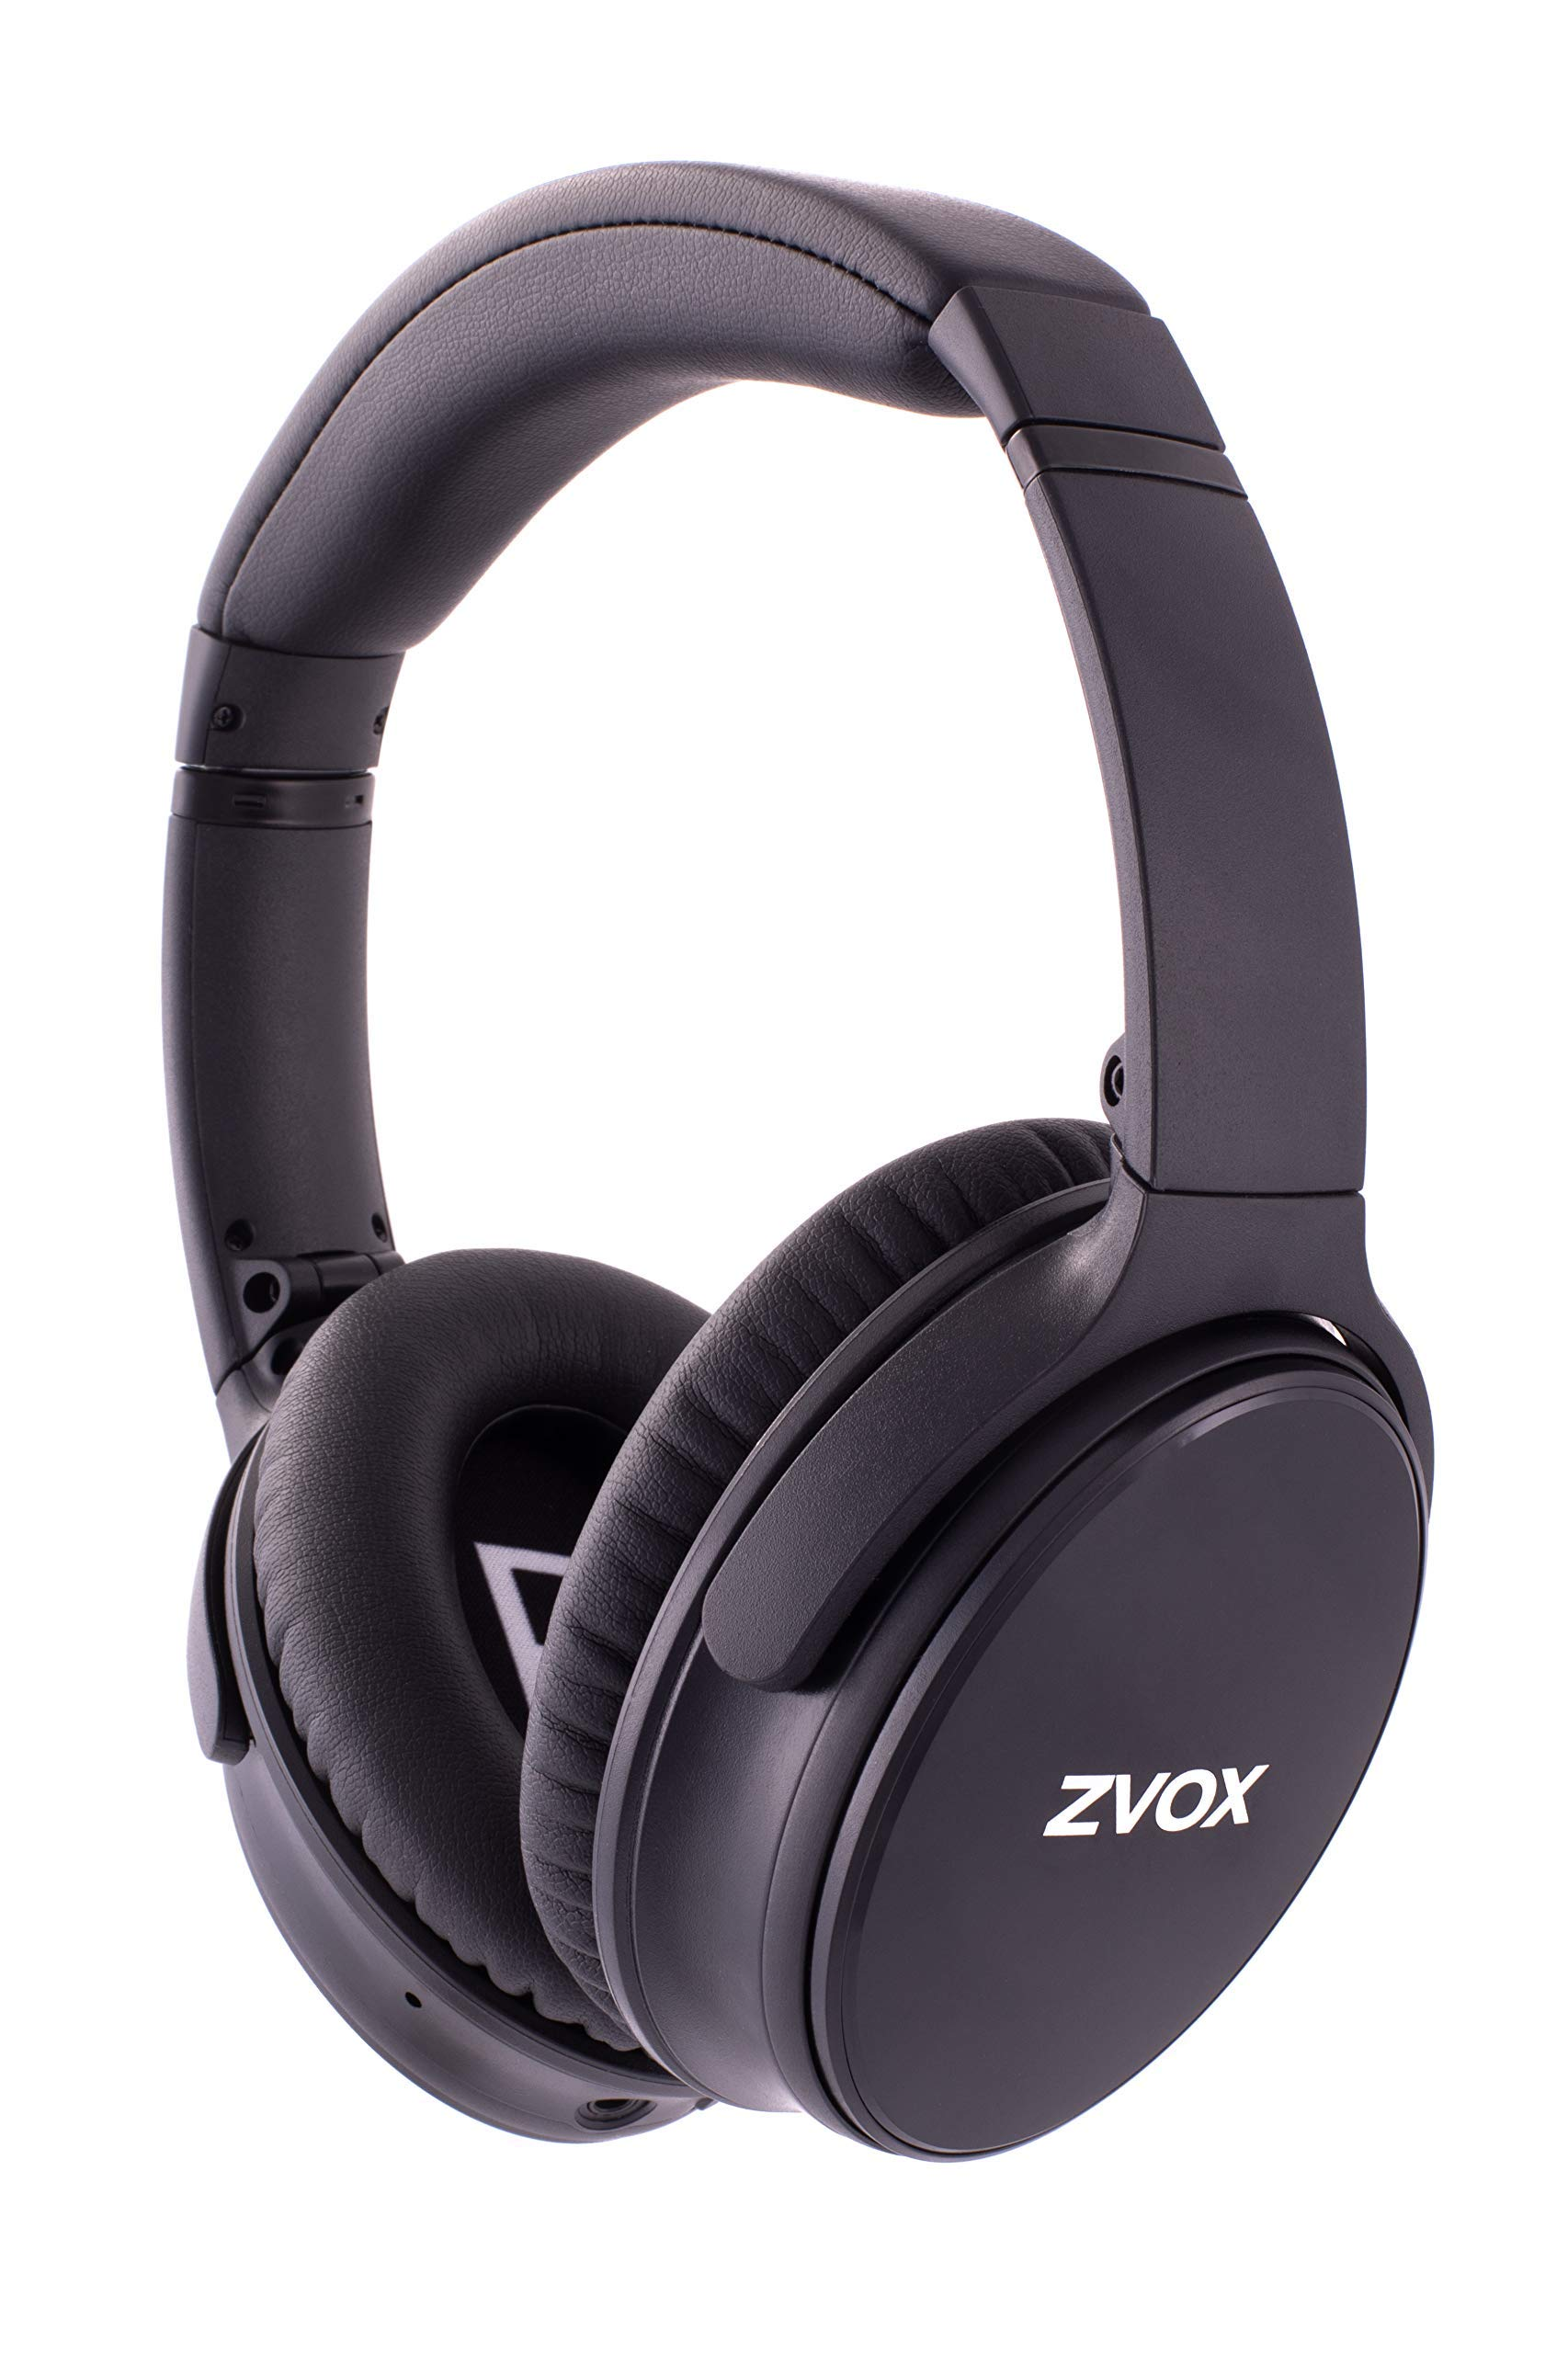 Zvox Voice Clarifying Noise Cancelling Bluetooth Headphones Accuvoice Av50 Black Buy Online In Kuwait Zvox Products In Kuwait See Prices Reviews And Free Delivery Over Kd 20 000 Desertcart